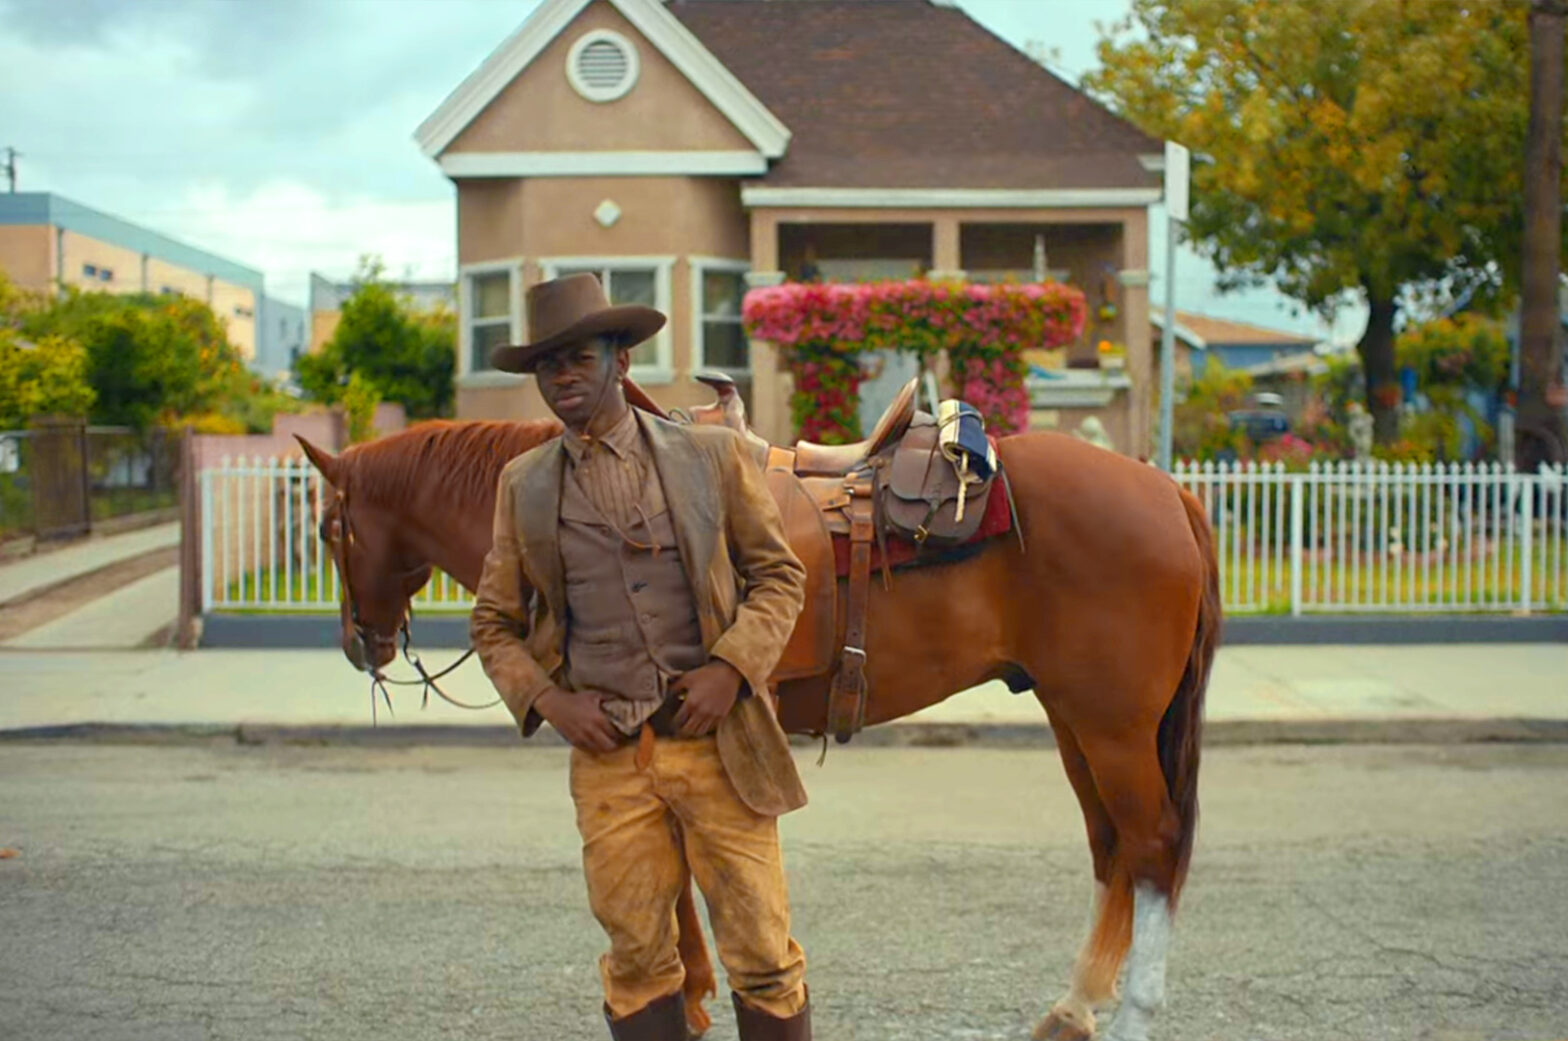 """Still from the music video for Lil Nas X's """"Old Town Road."""" Lil Nas X, in country western clothing in front of a horse, stands in an Los Angeles neighbordhood."""